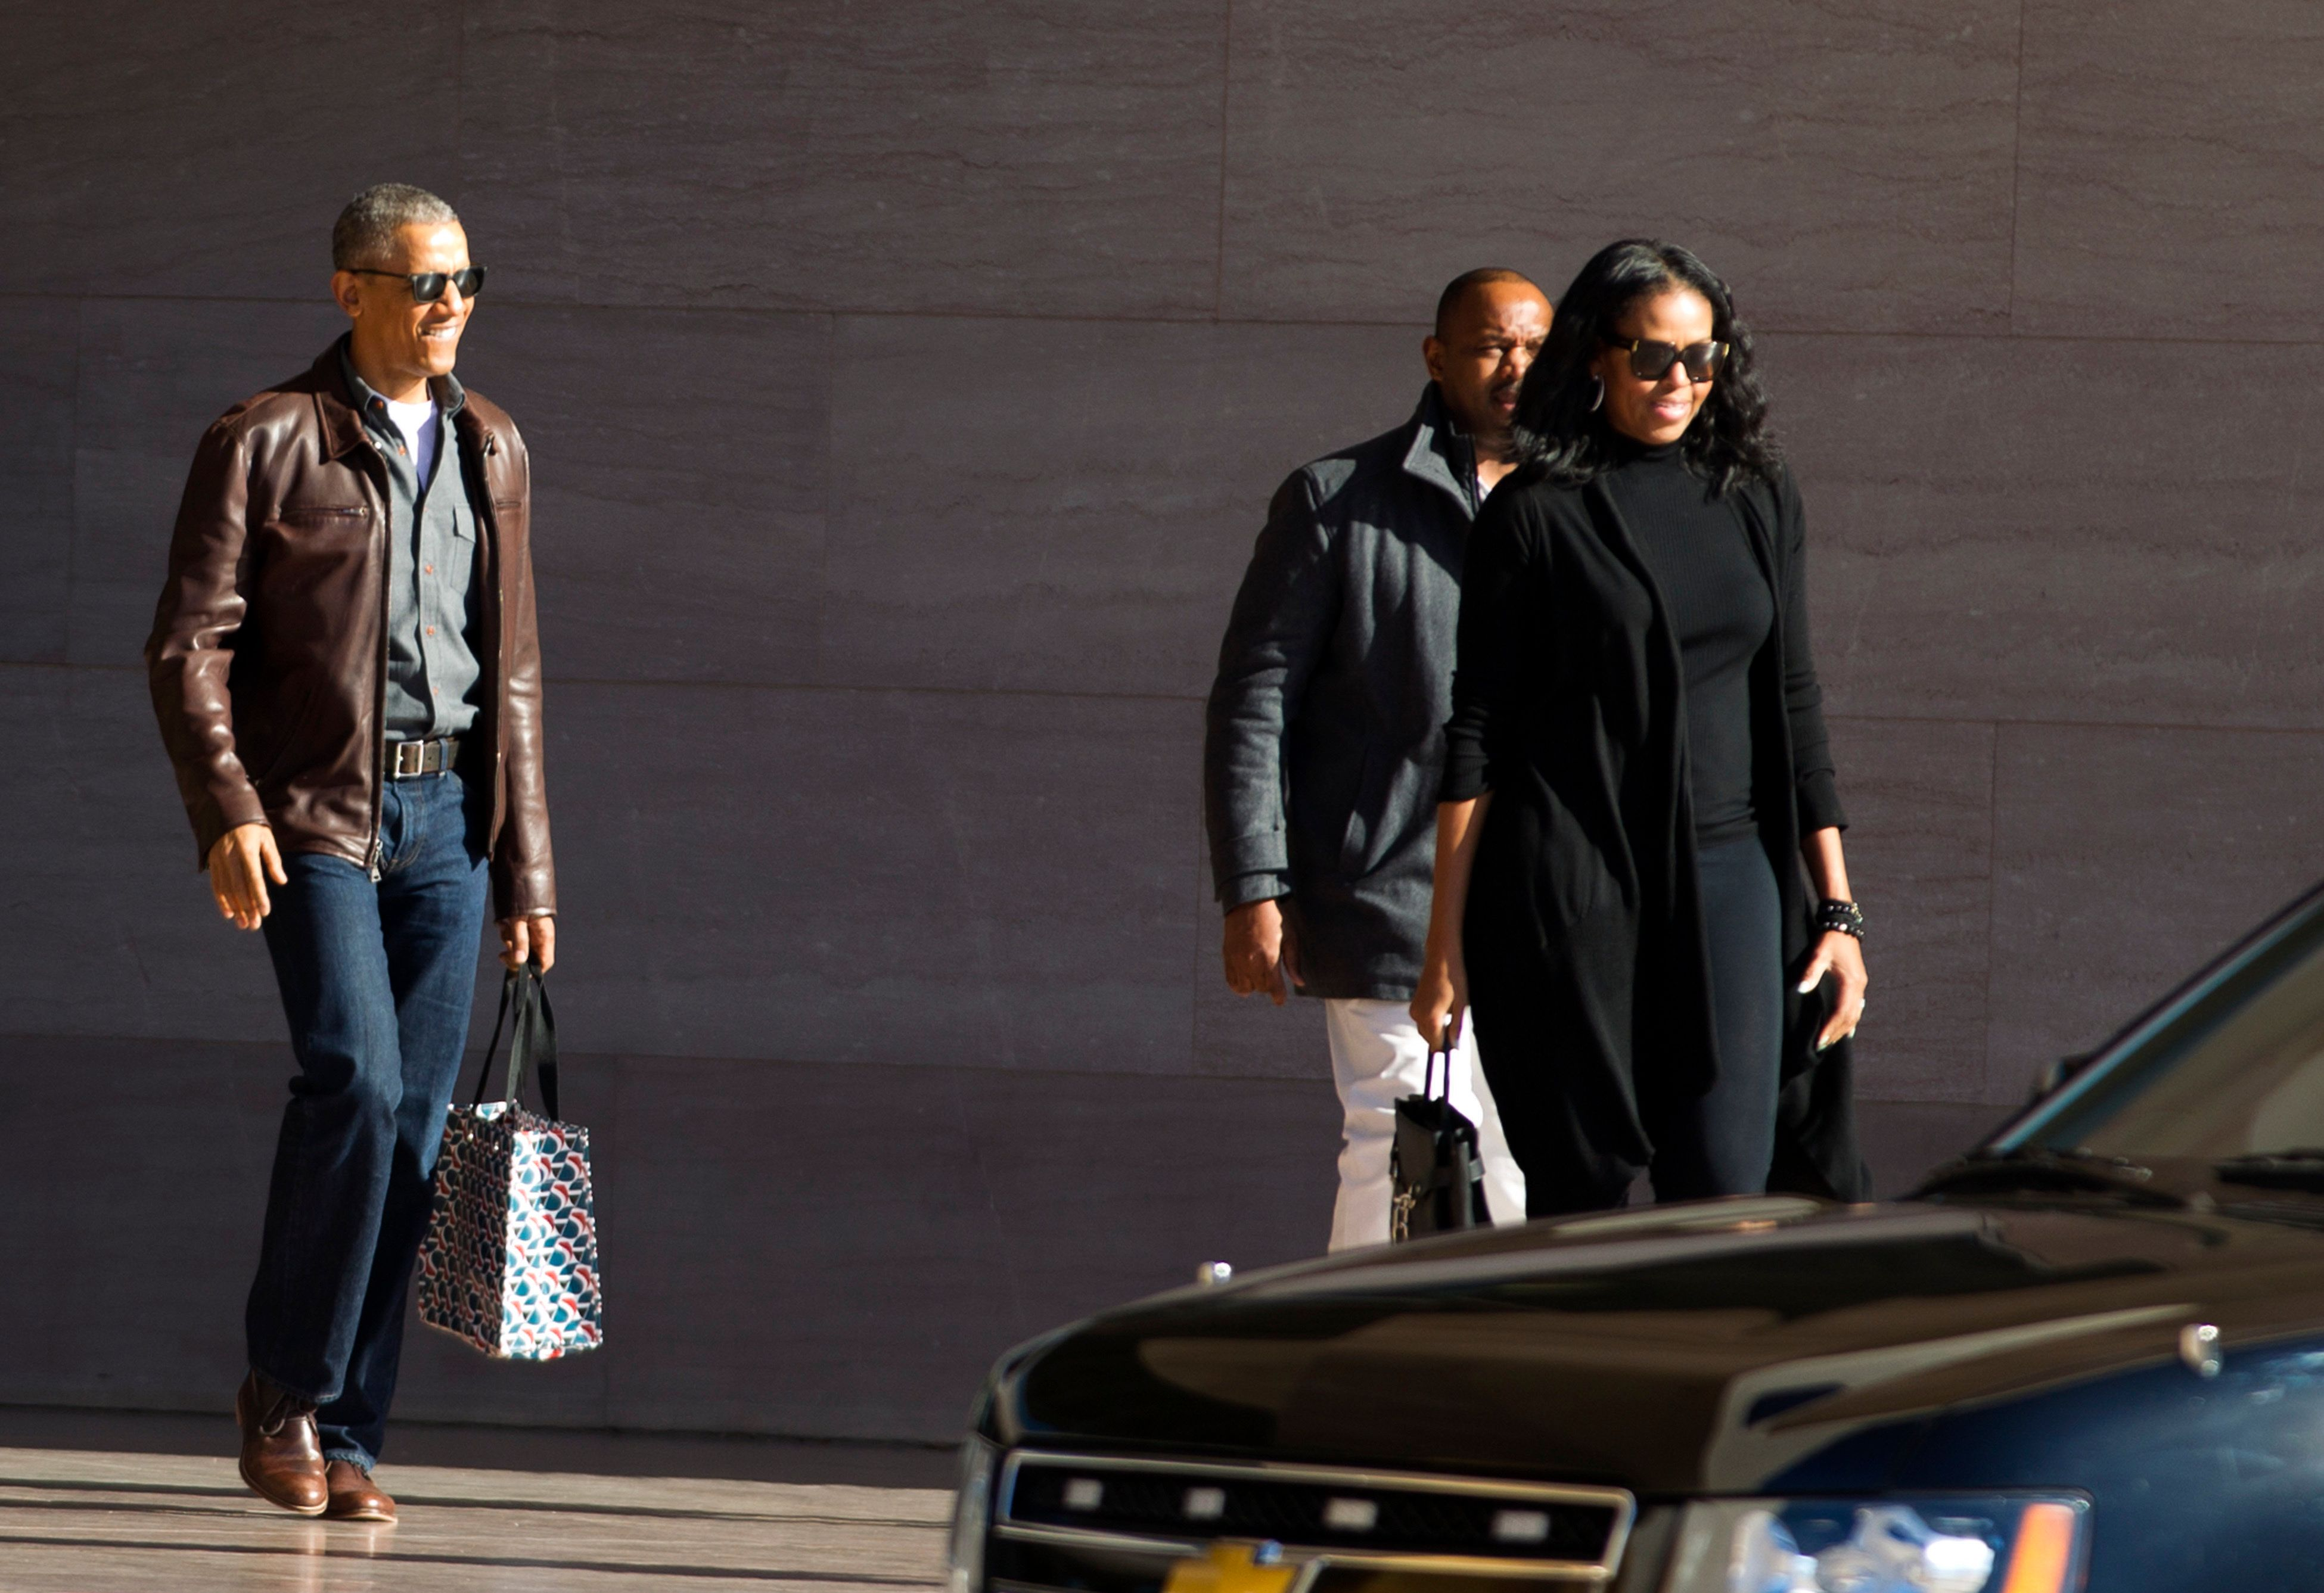 """People Magazine's article about the former<a href=""""http://people.com/style/barack-obama-post-presidency-style-leather-j"""